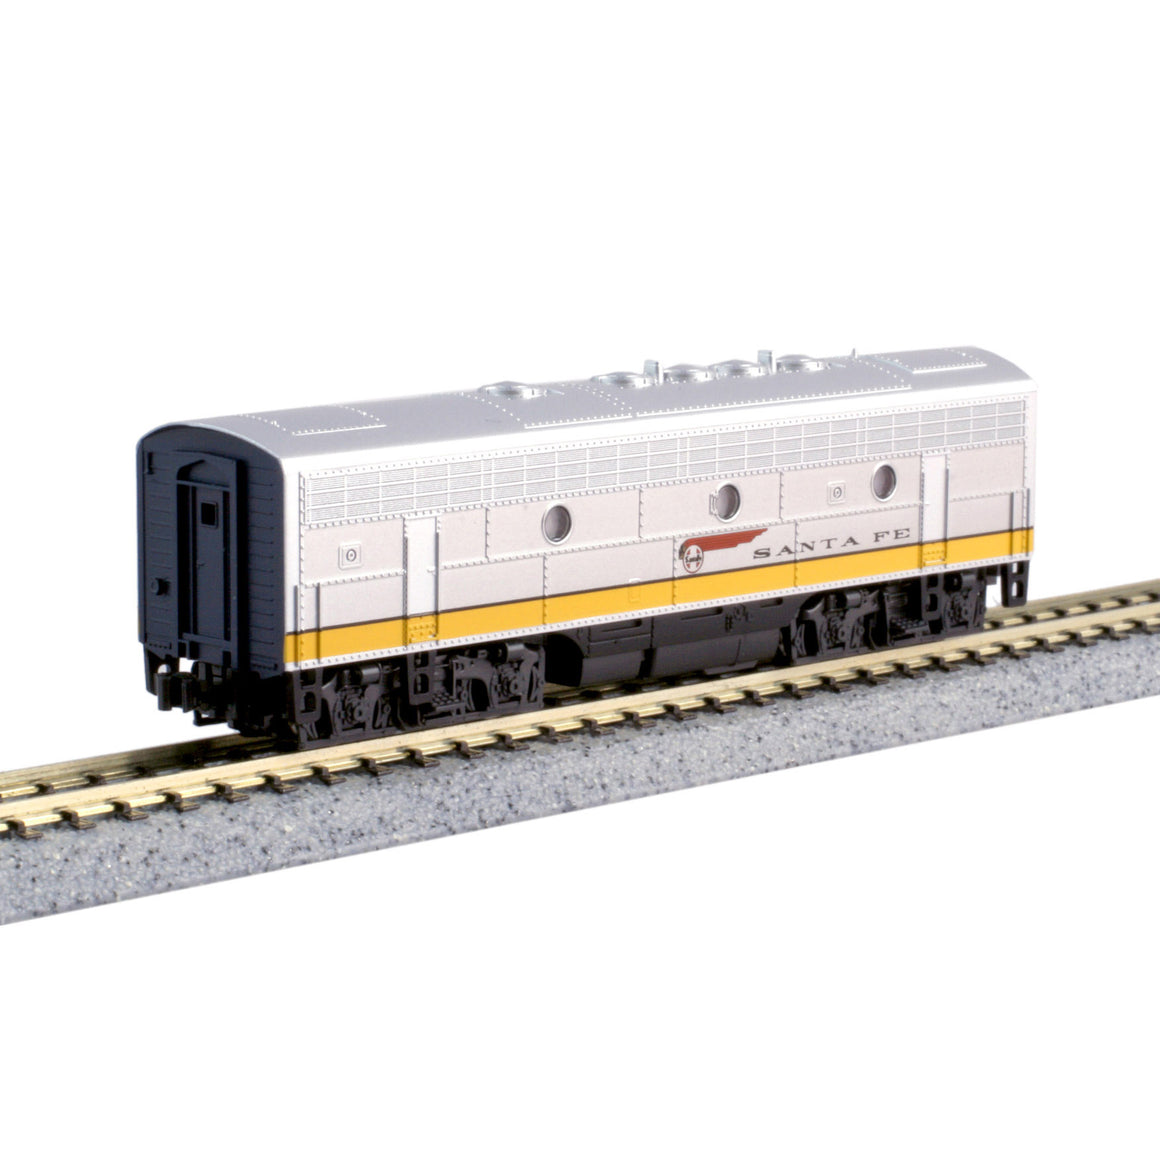 N Scale: EMD F7B 'No Steam Generator' - DCC Ready - Santa Fe